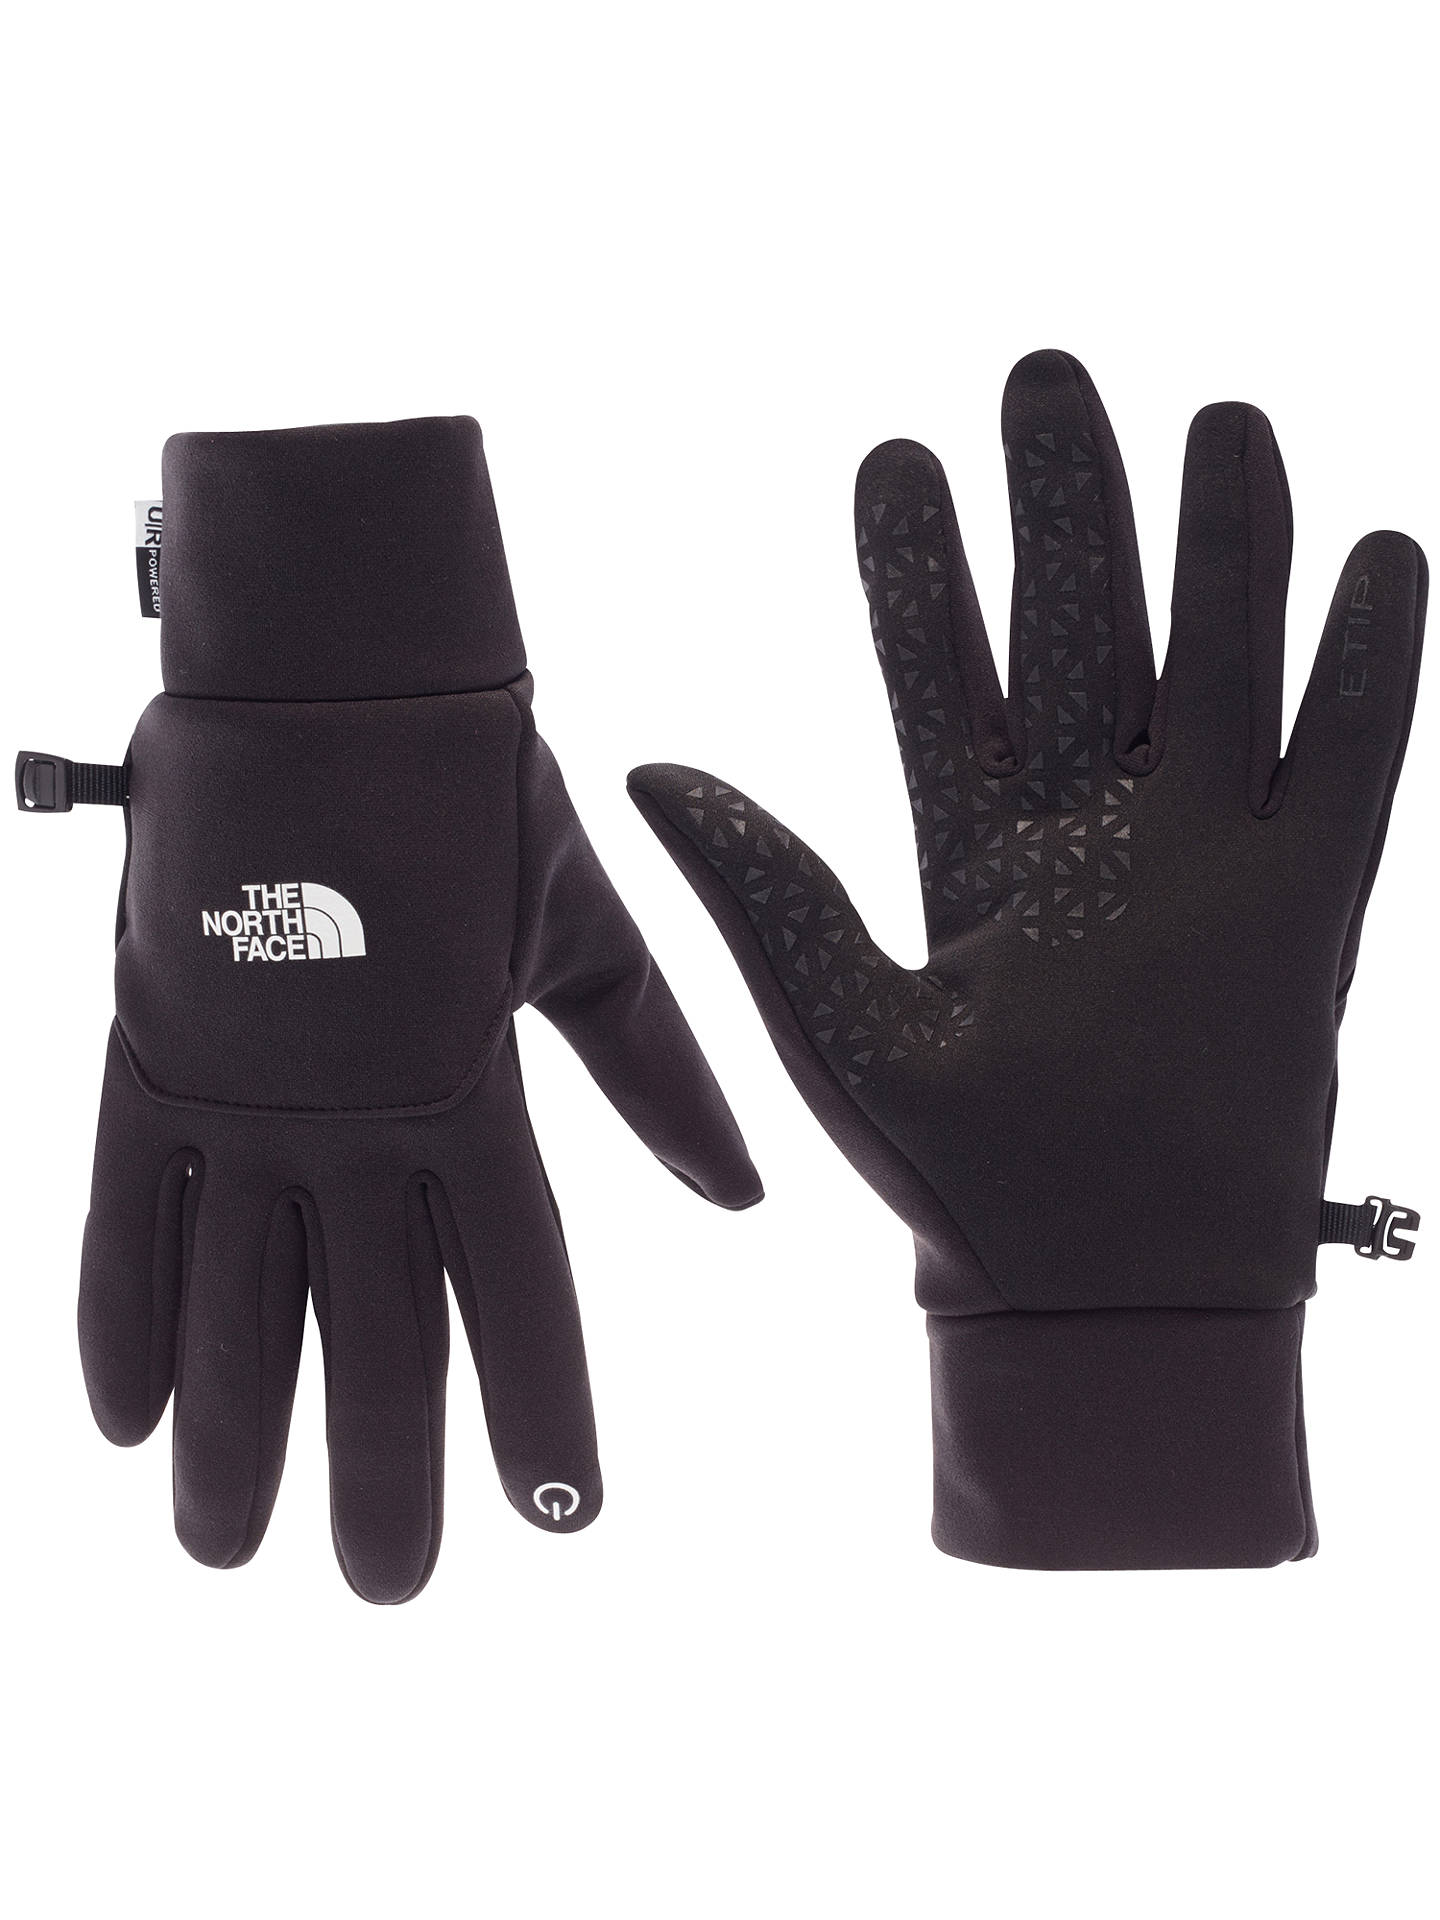 d1b866d50 The North Face Men's Etip Gloves at John Lewis & Partners